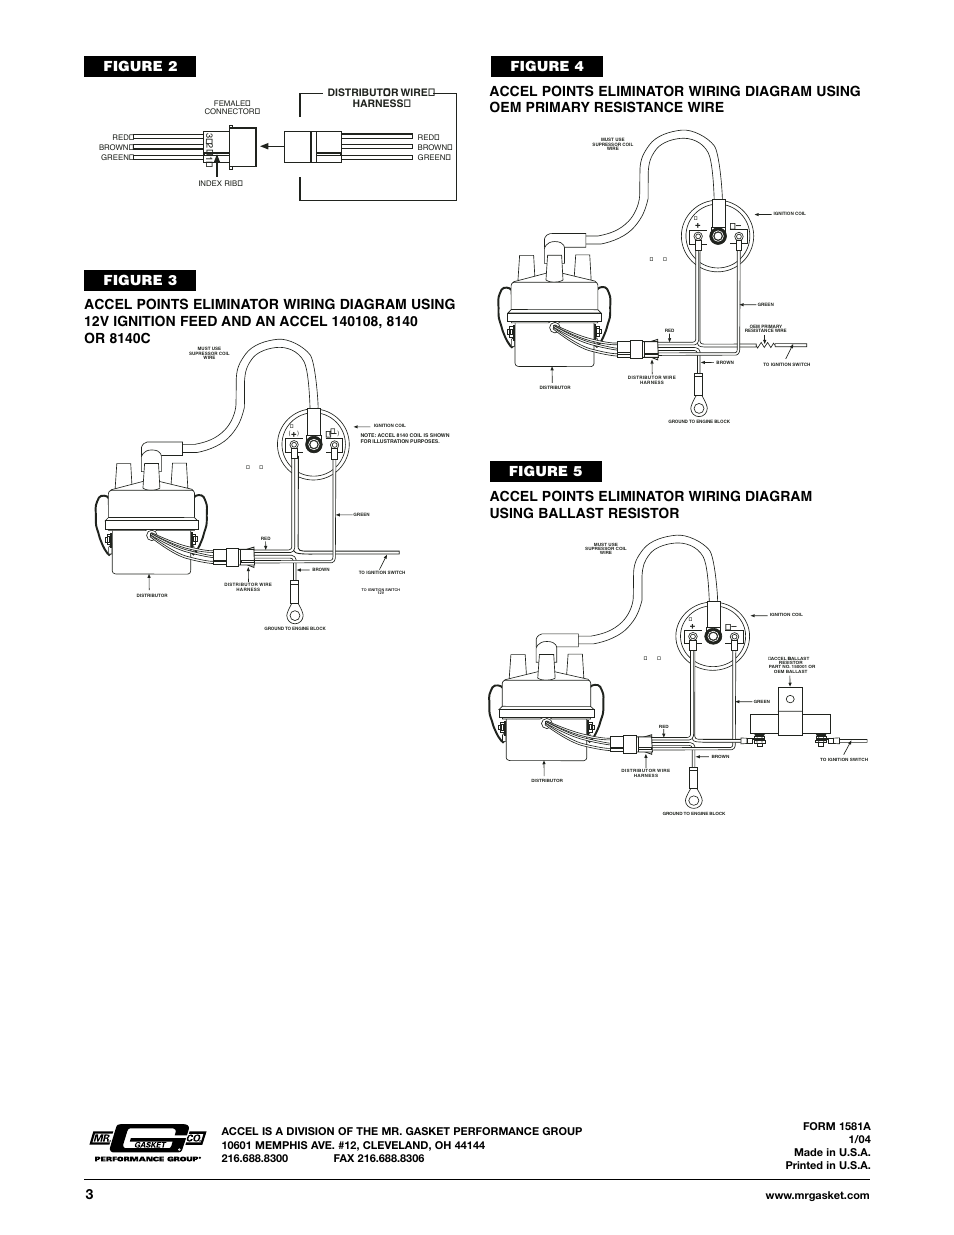 Mallory Ignition Accel Points Eliminator Conversion Page on Accel Points Eliminator Wiring Diagram